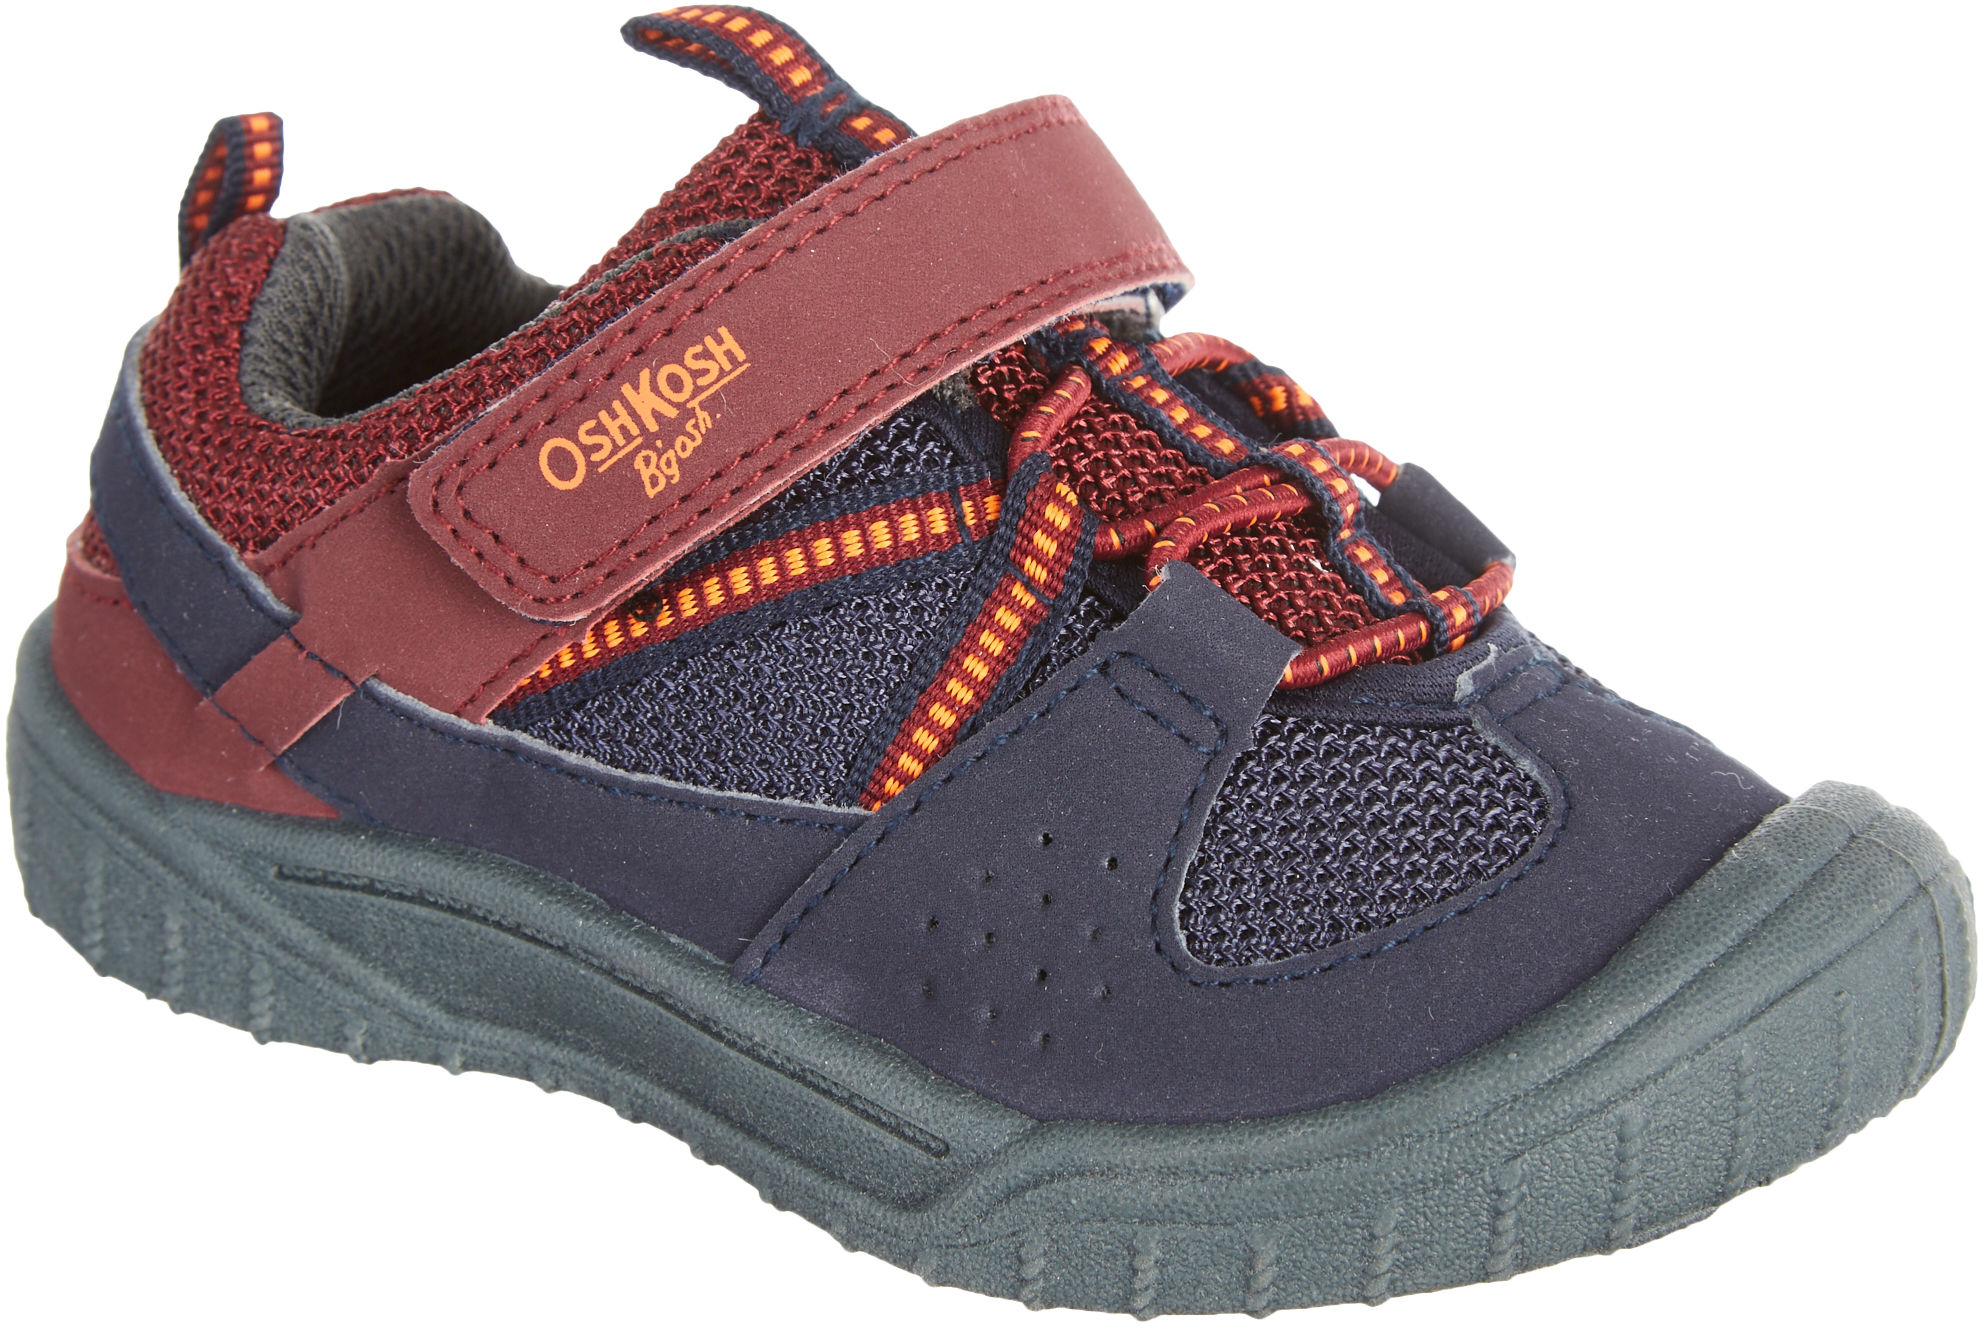 Whether you need young boys or teens shoes, Rogan's Shoes has all the brands and styles imaginable. Rogan's Shoes has back-to-school shoes in brands like ASICS, Merrell, Skechers and more that are great for everyday wear. Get athletic shoes for recess or .